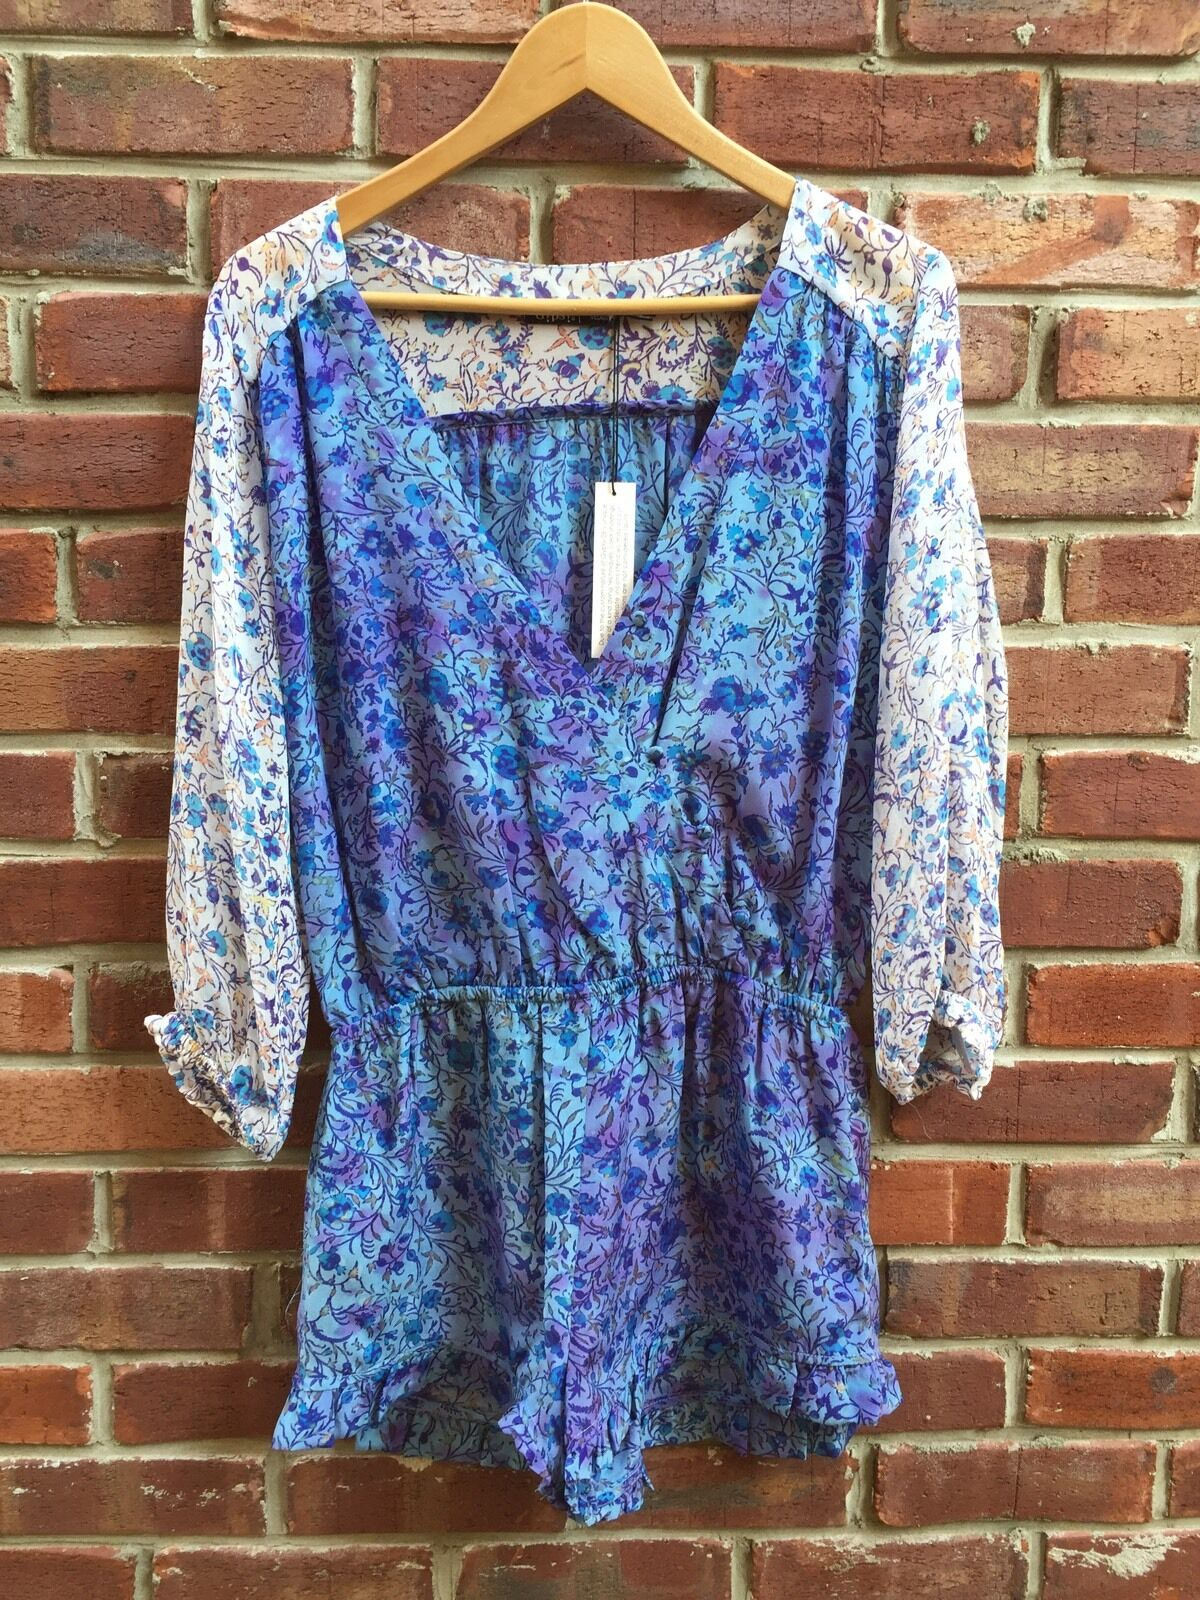 210 Gypsy 05 bluee Purple Floral Silk Romper Jumpsuit Ruffle M Medium RARE